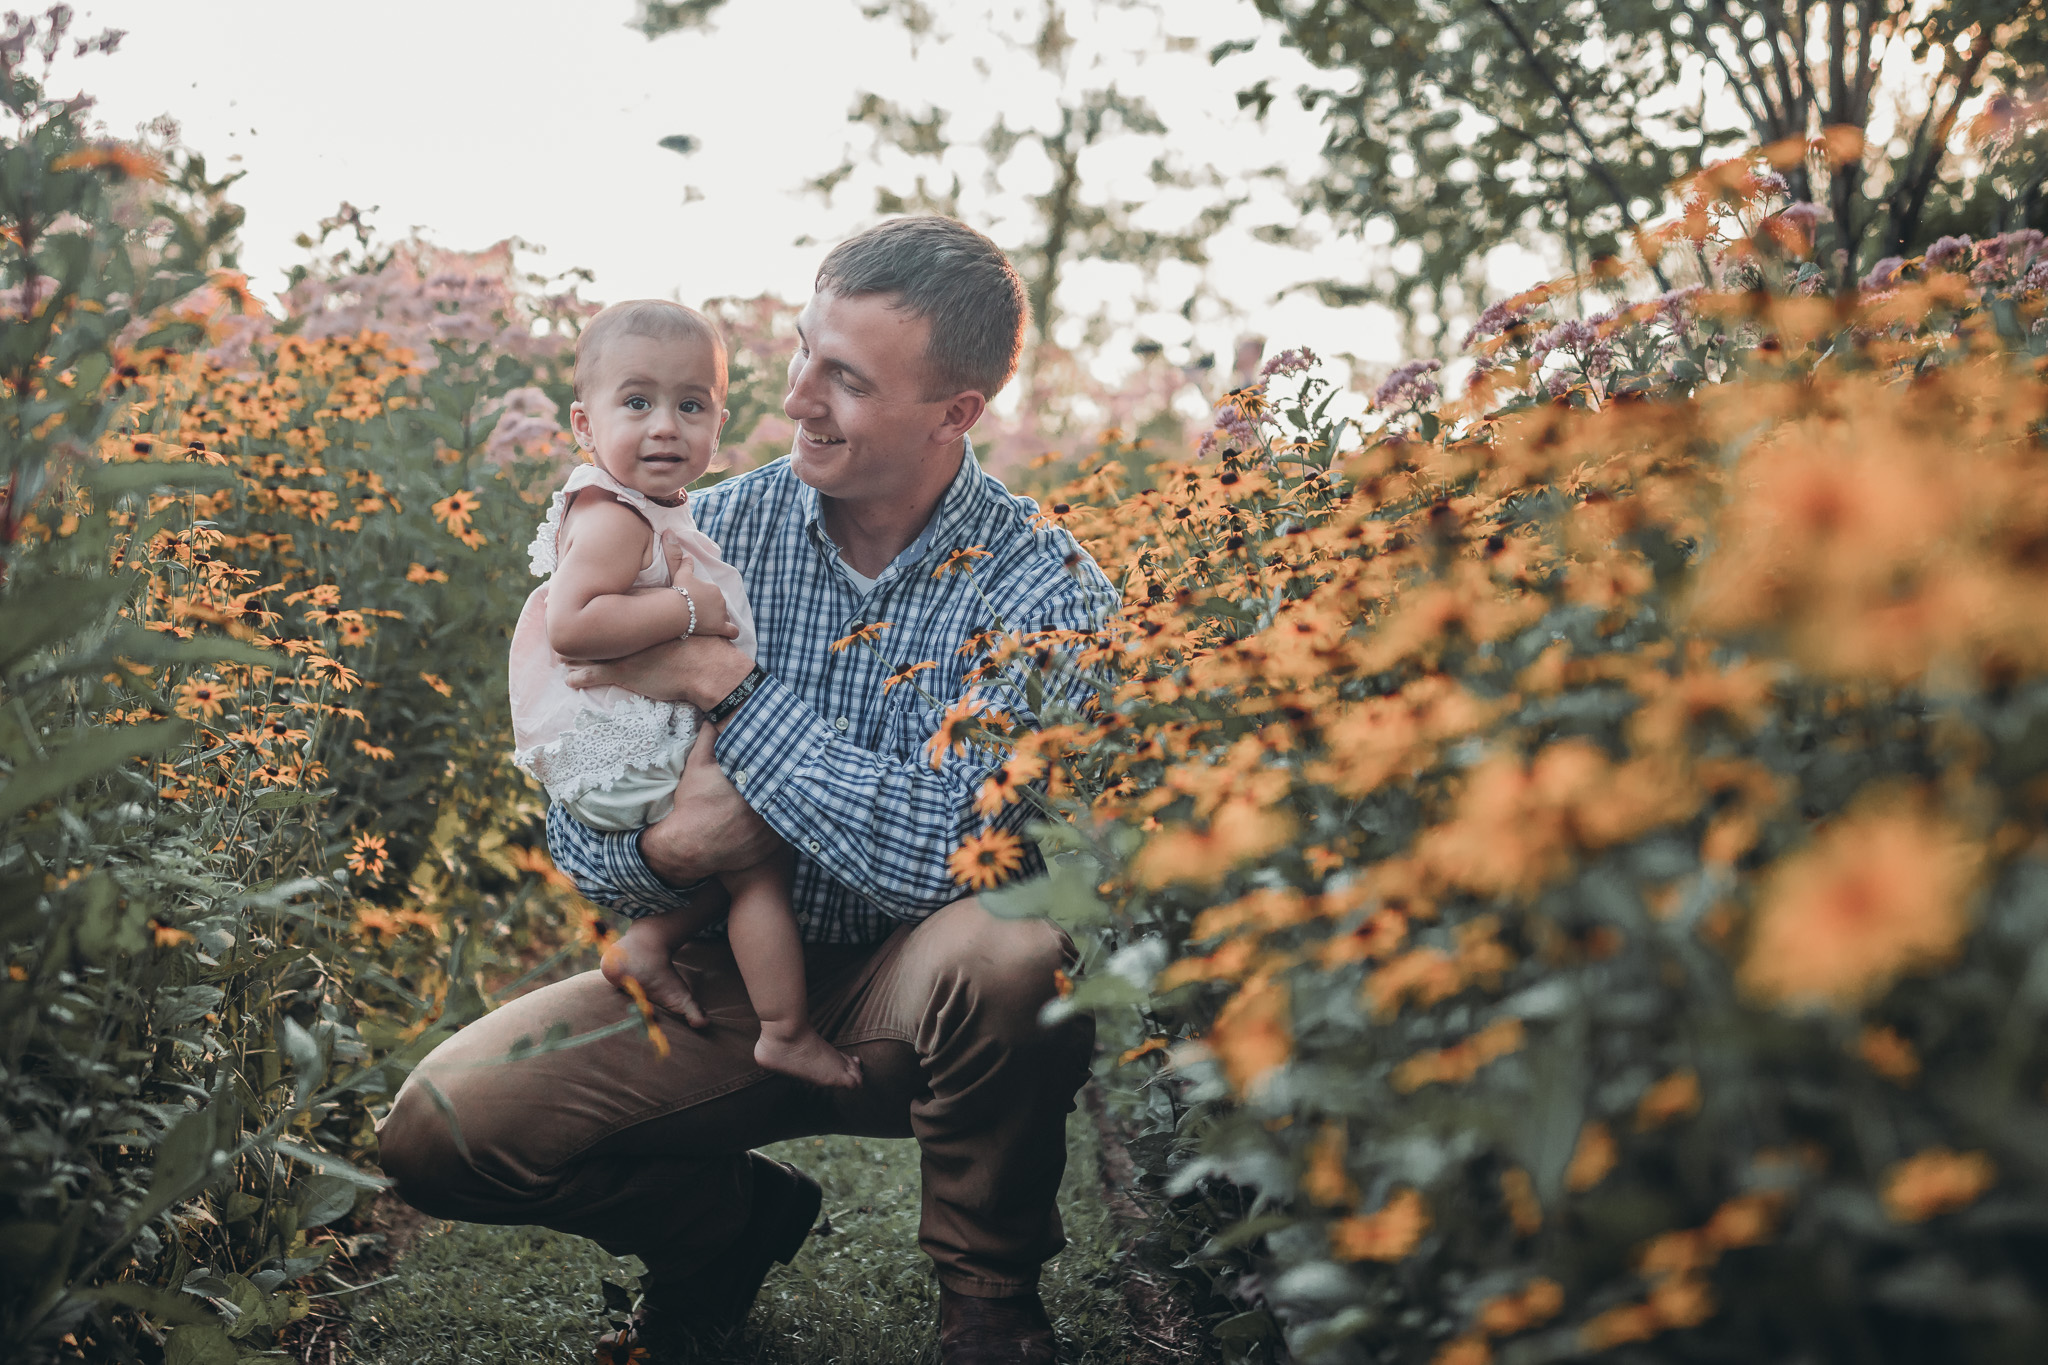 dad and baby in flowers